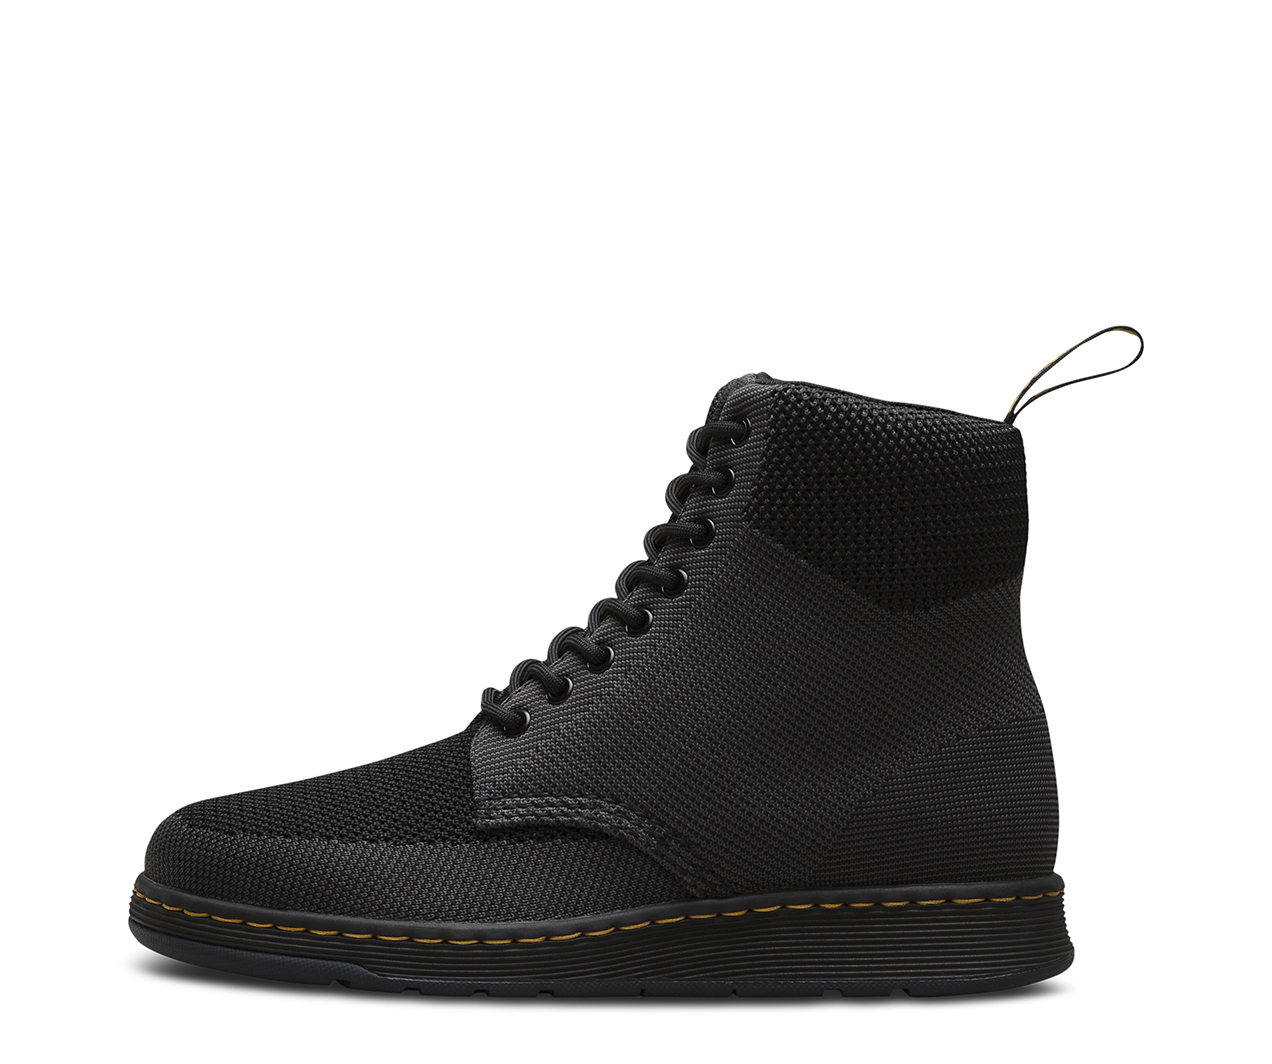 Dr. Martens Rigal 8-Eye Boot, Size: 3 M, Black/Anthracite Knit Textile